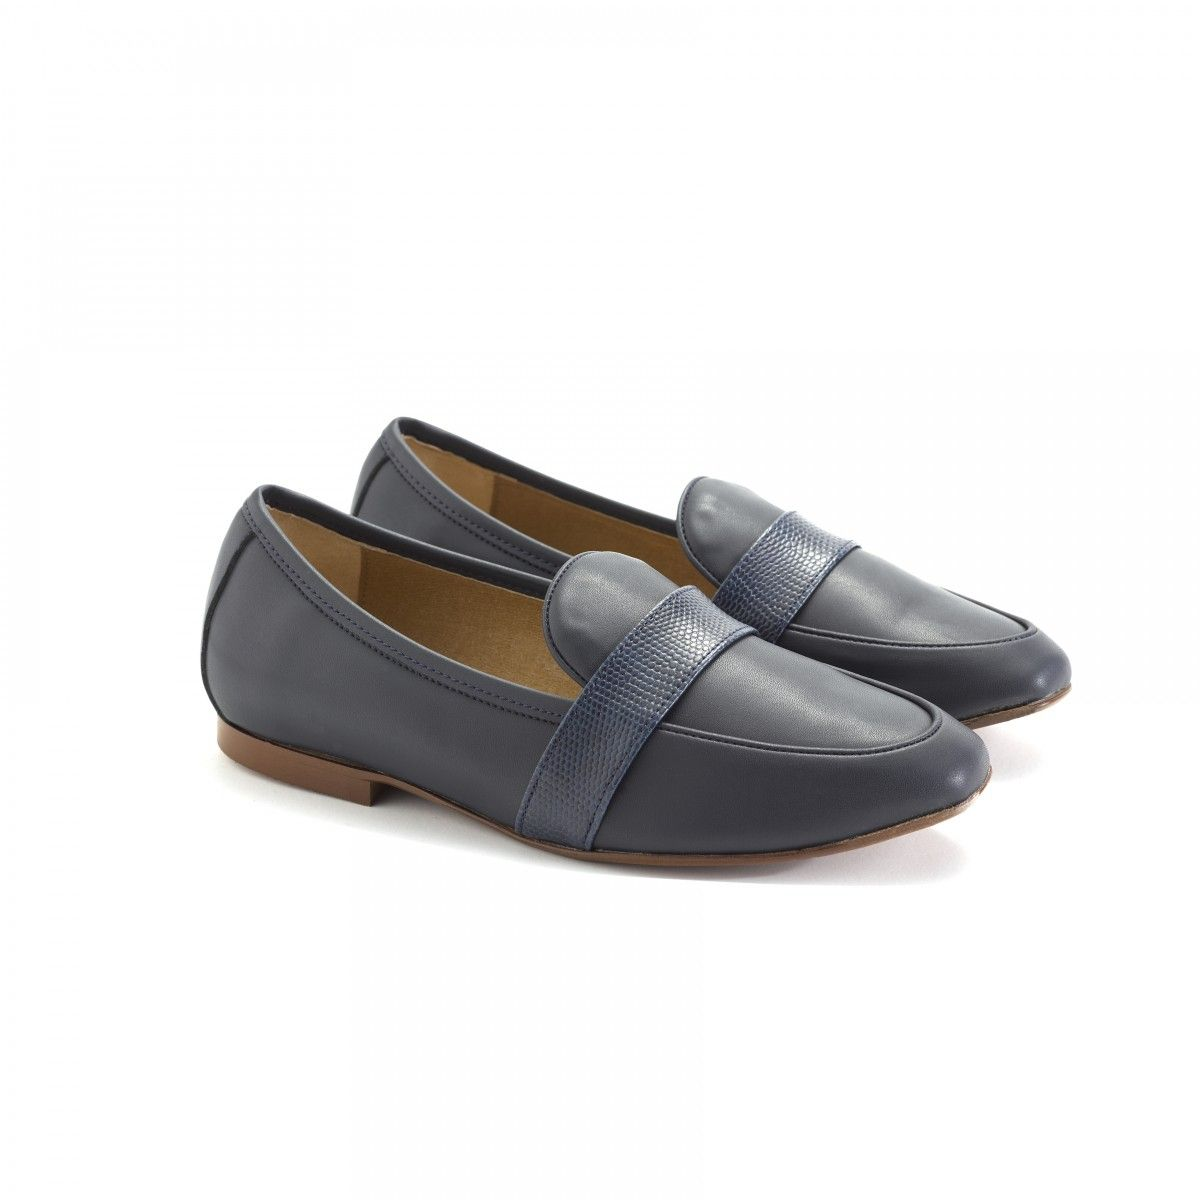 ff0dd8a94e47 Cruelty free black loafers shoes - ByBlanch ethical shoe brand online